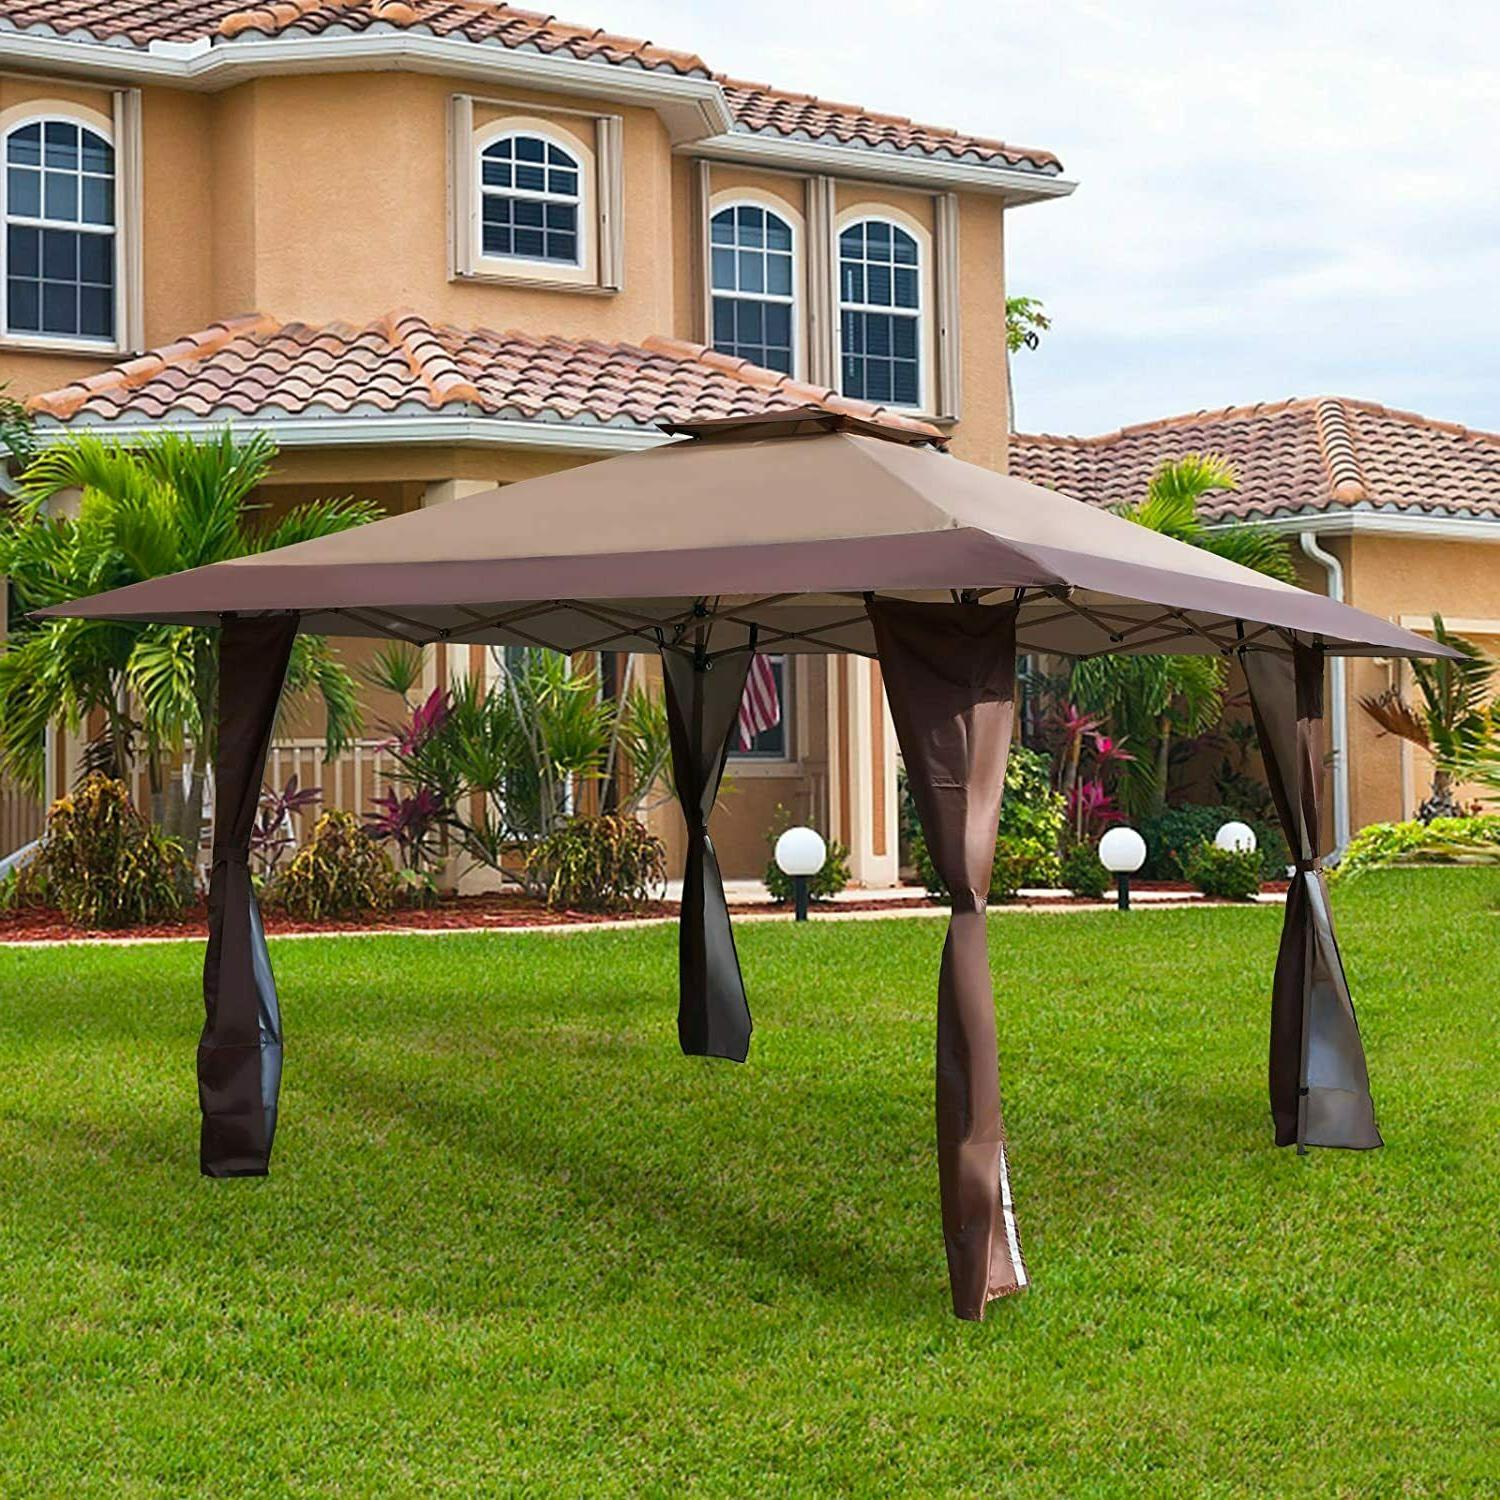 13' UV Gazebo for Outdoor Patio/ Garden